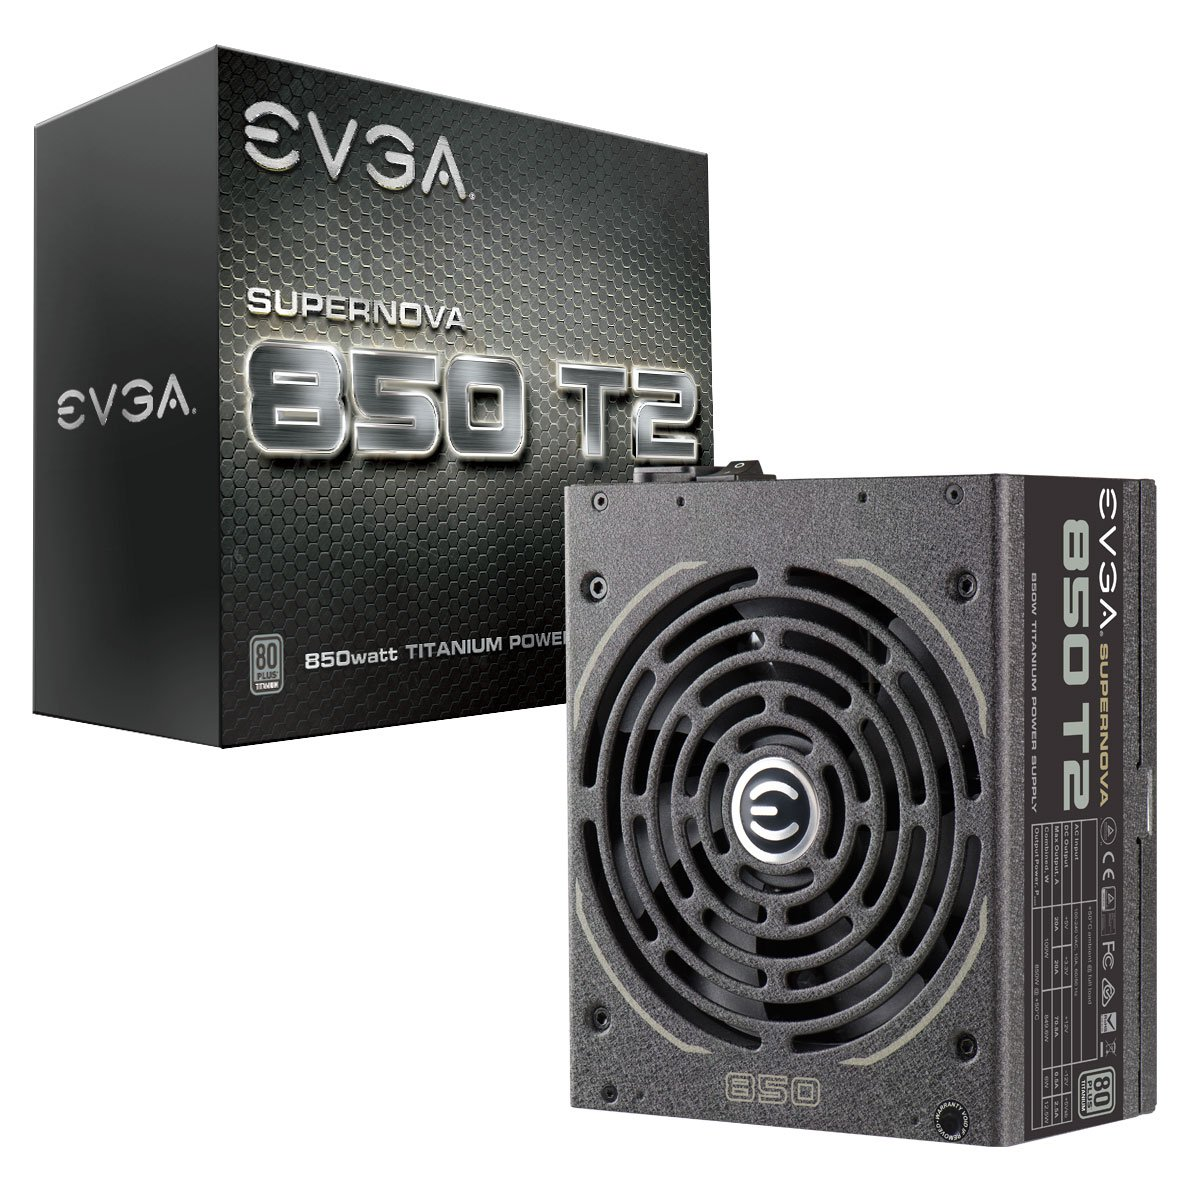 EVGA Supernova 850 T2, 80+ Titanium 850W, Fully Modular, ECO Mode, 10 Year Warranty, Includes Free Power On Self Tester, Power Supply 220-T2-0850-X1 by EVGA